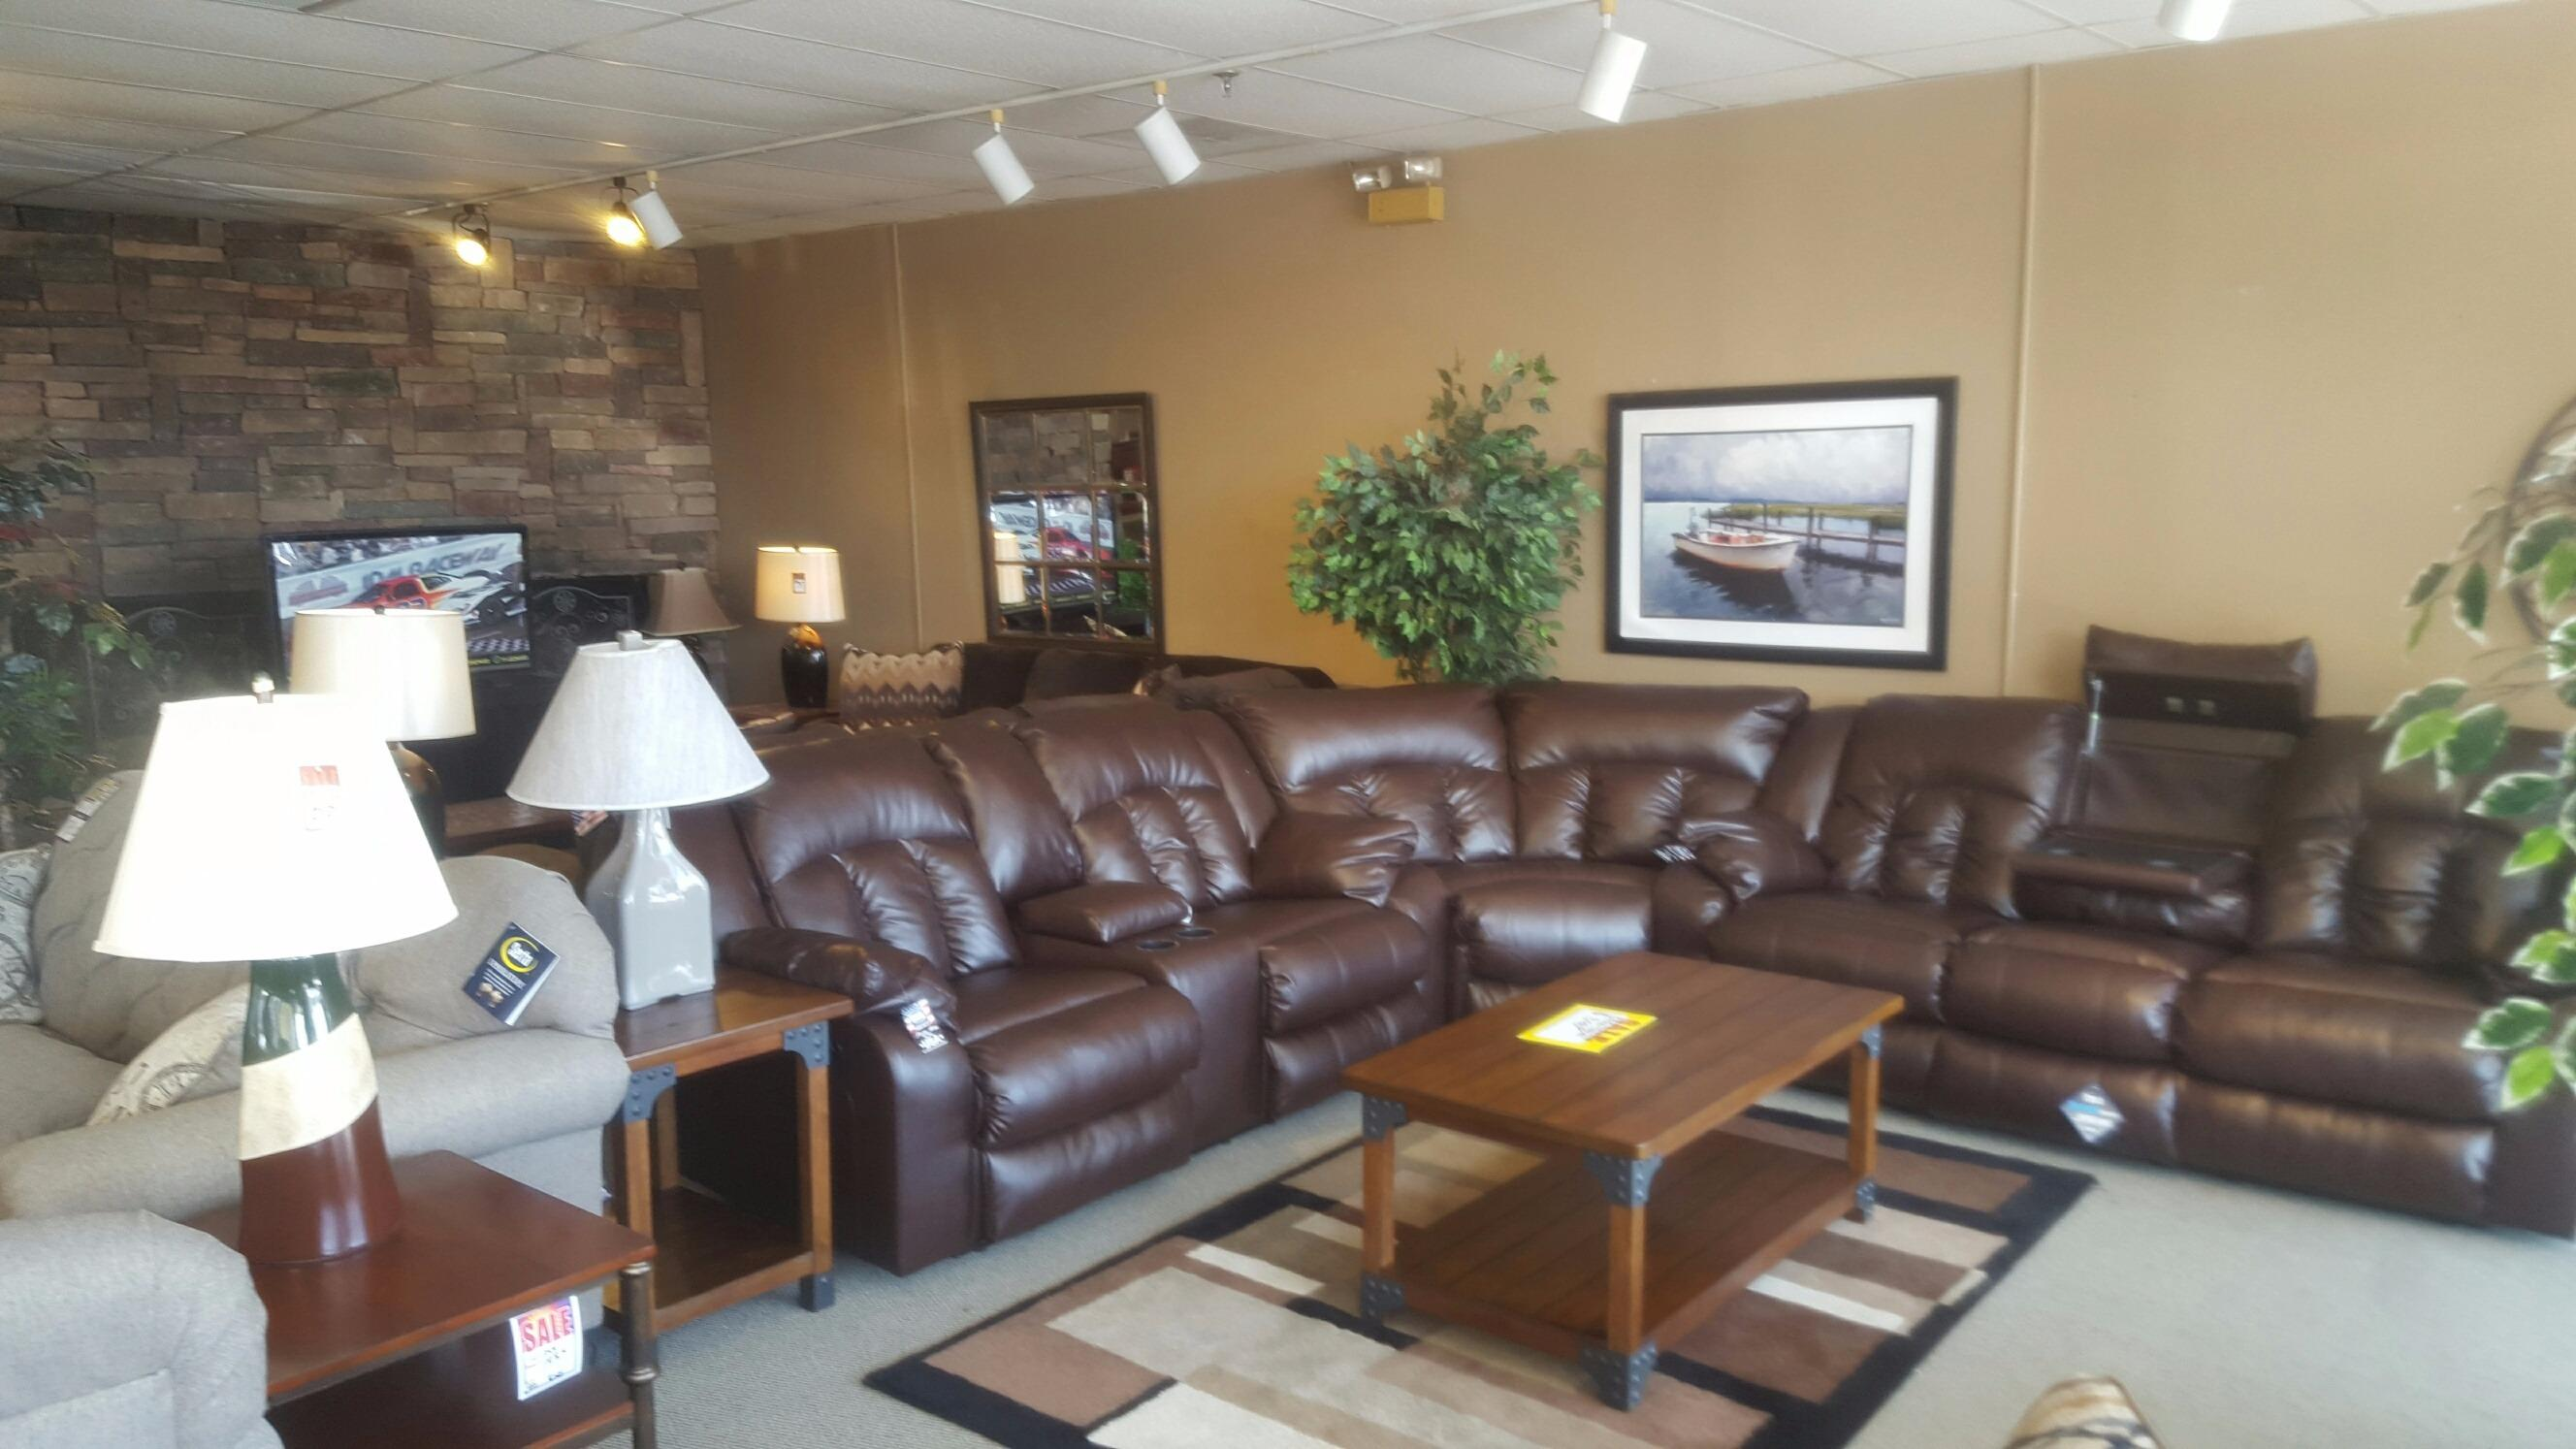 Schloemer Furniture And Sleep Center 8141 Mall Rd Florence, KY Furniture  Stores   MapQuest